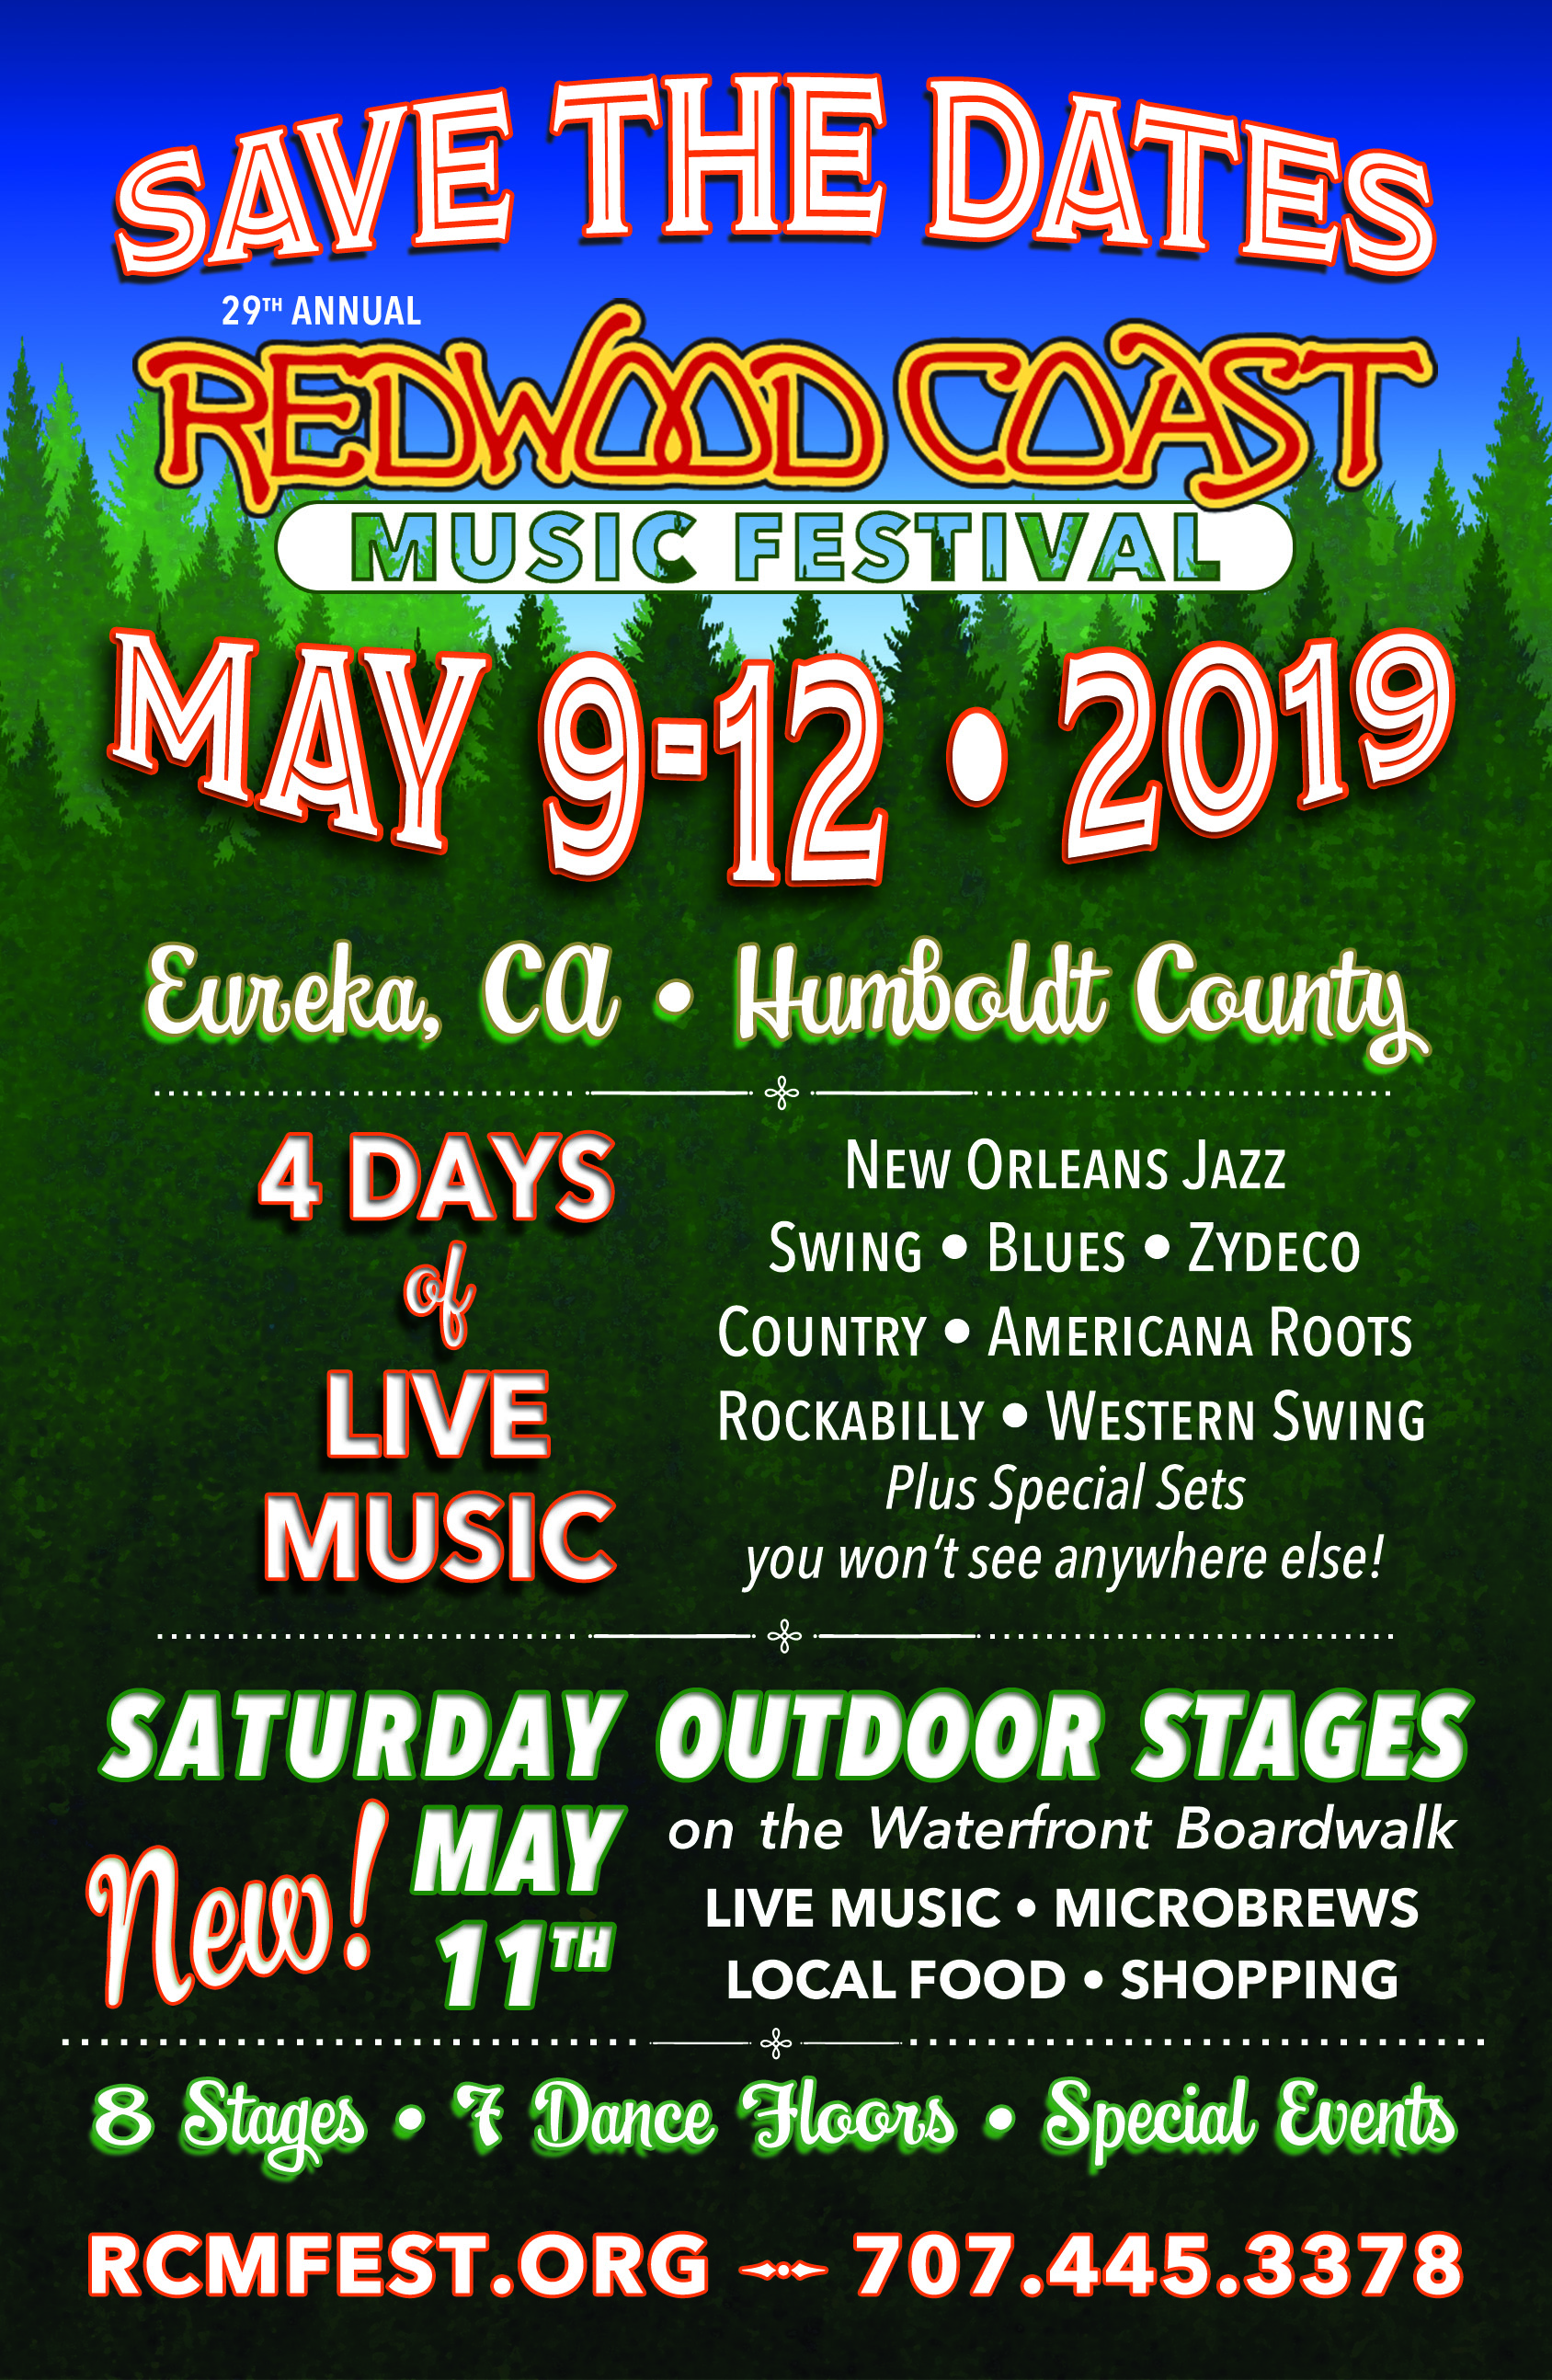 An all you can hear buffet the redwood coast music festival may 9 12 2019 jazz lives for Redwood room live music schedule